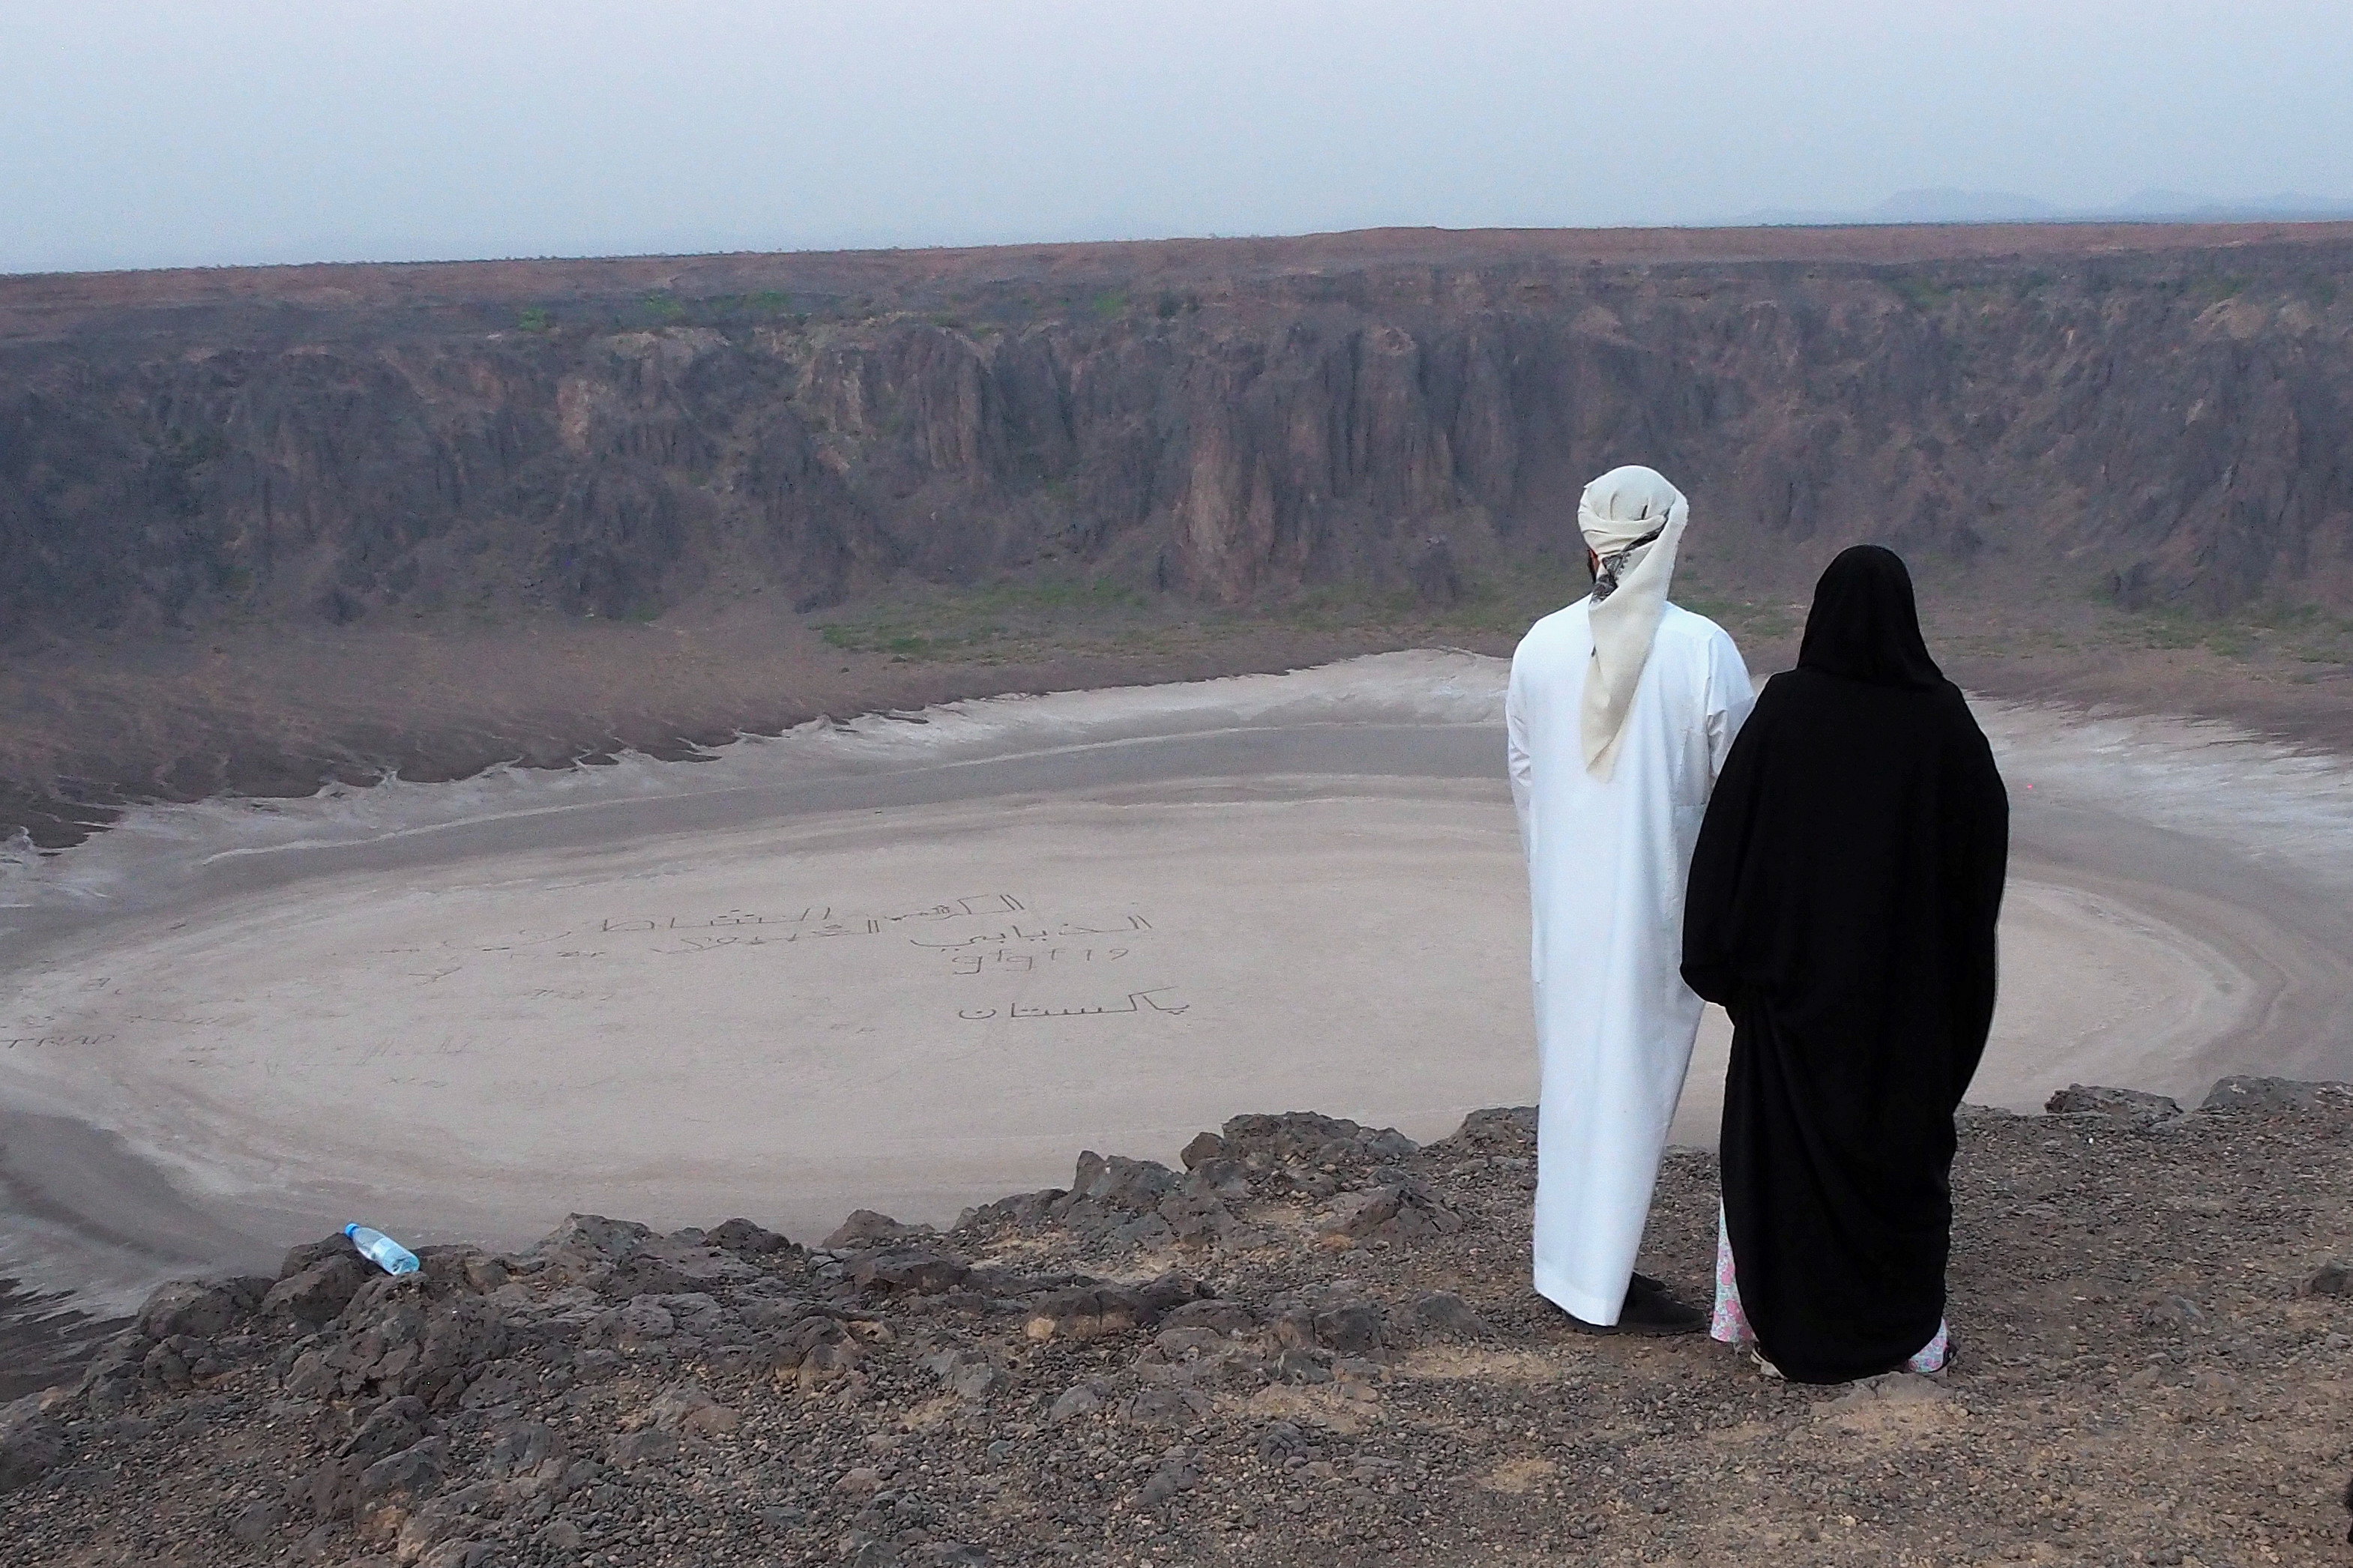 Saudi couple admiring the Wa'abah Crater (photo: Martin Beuvelot)